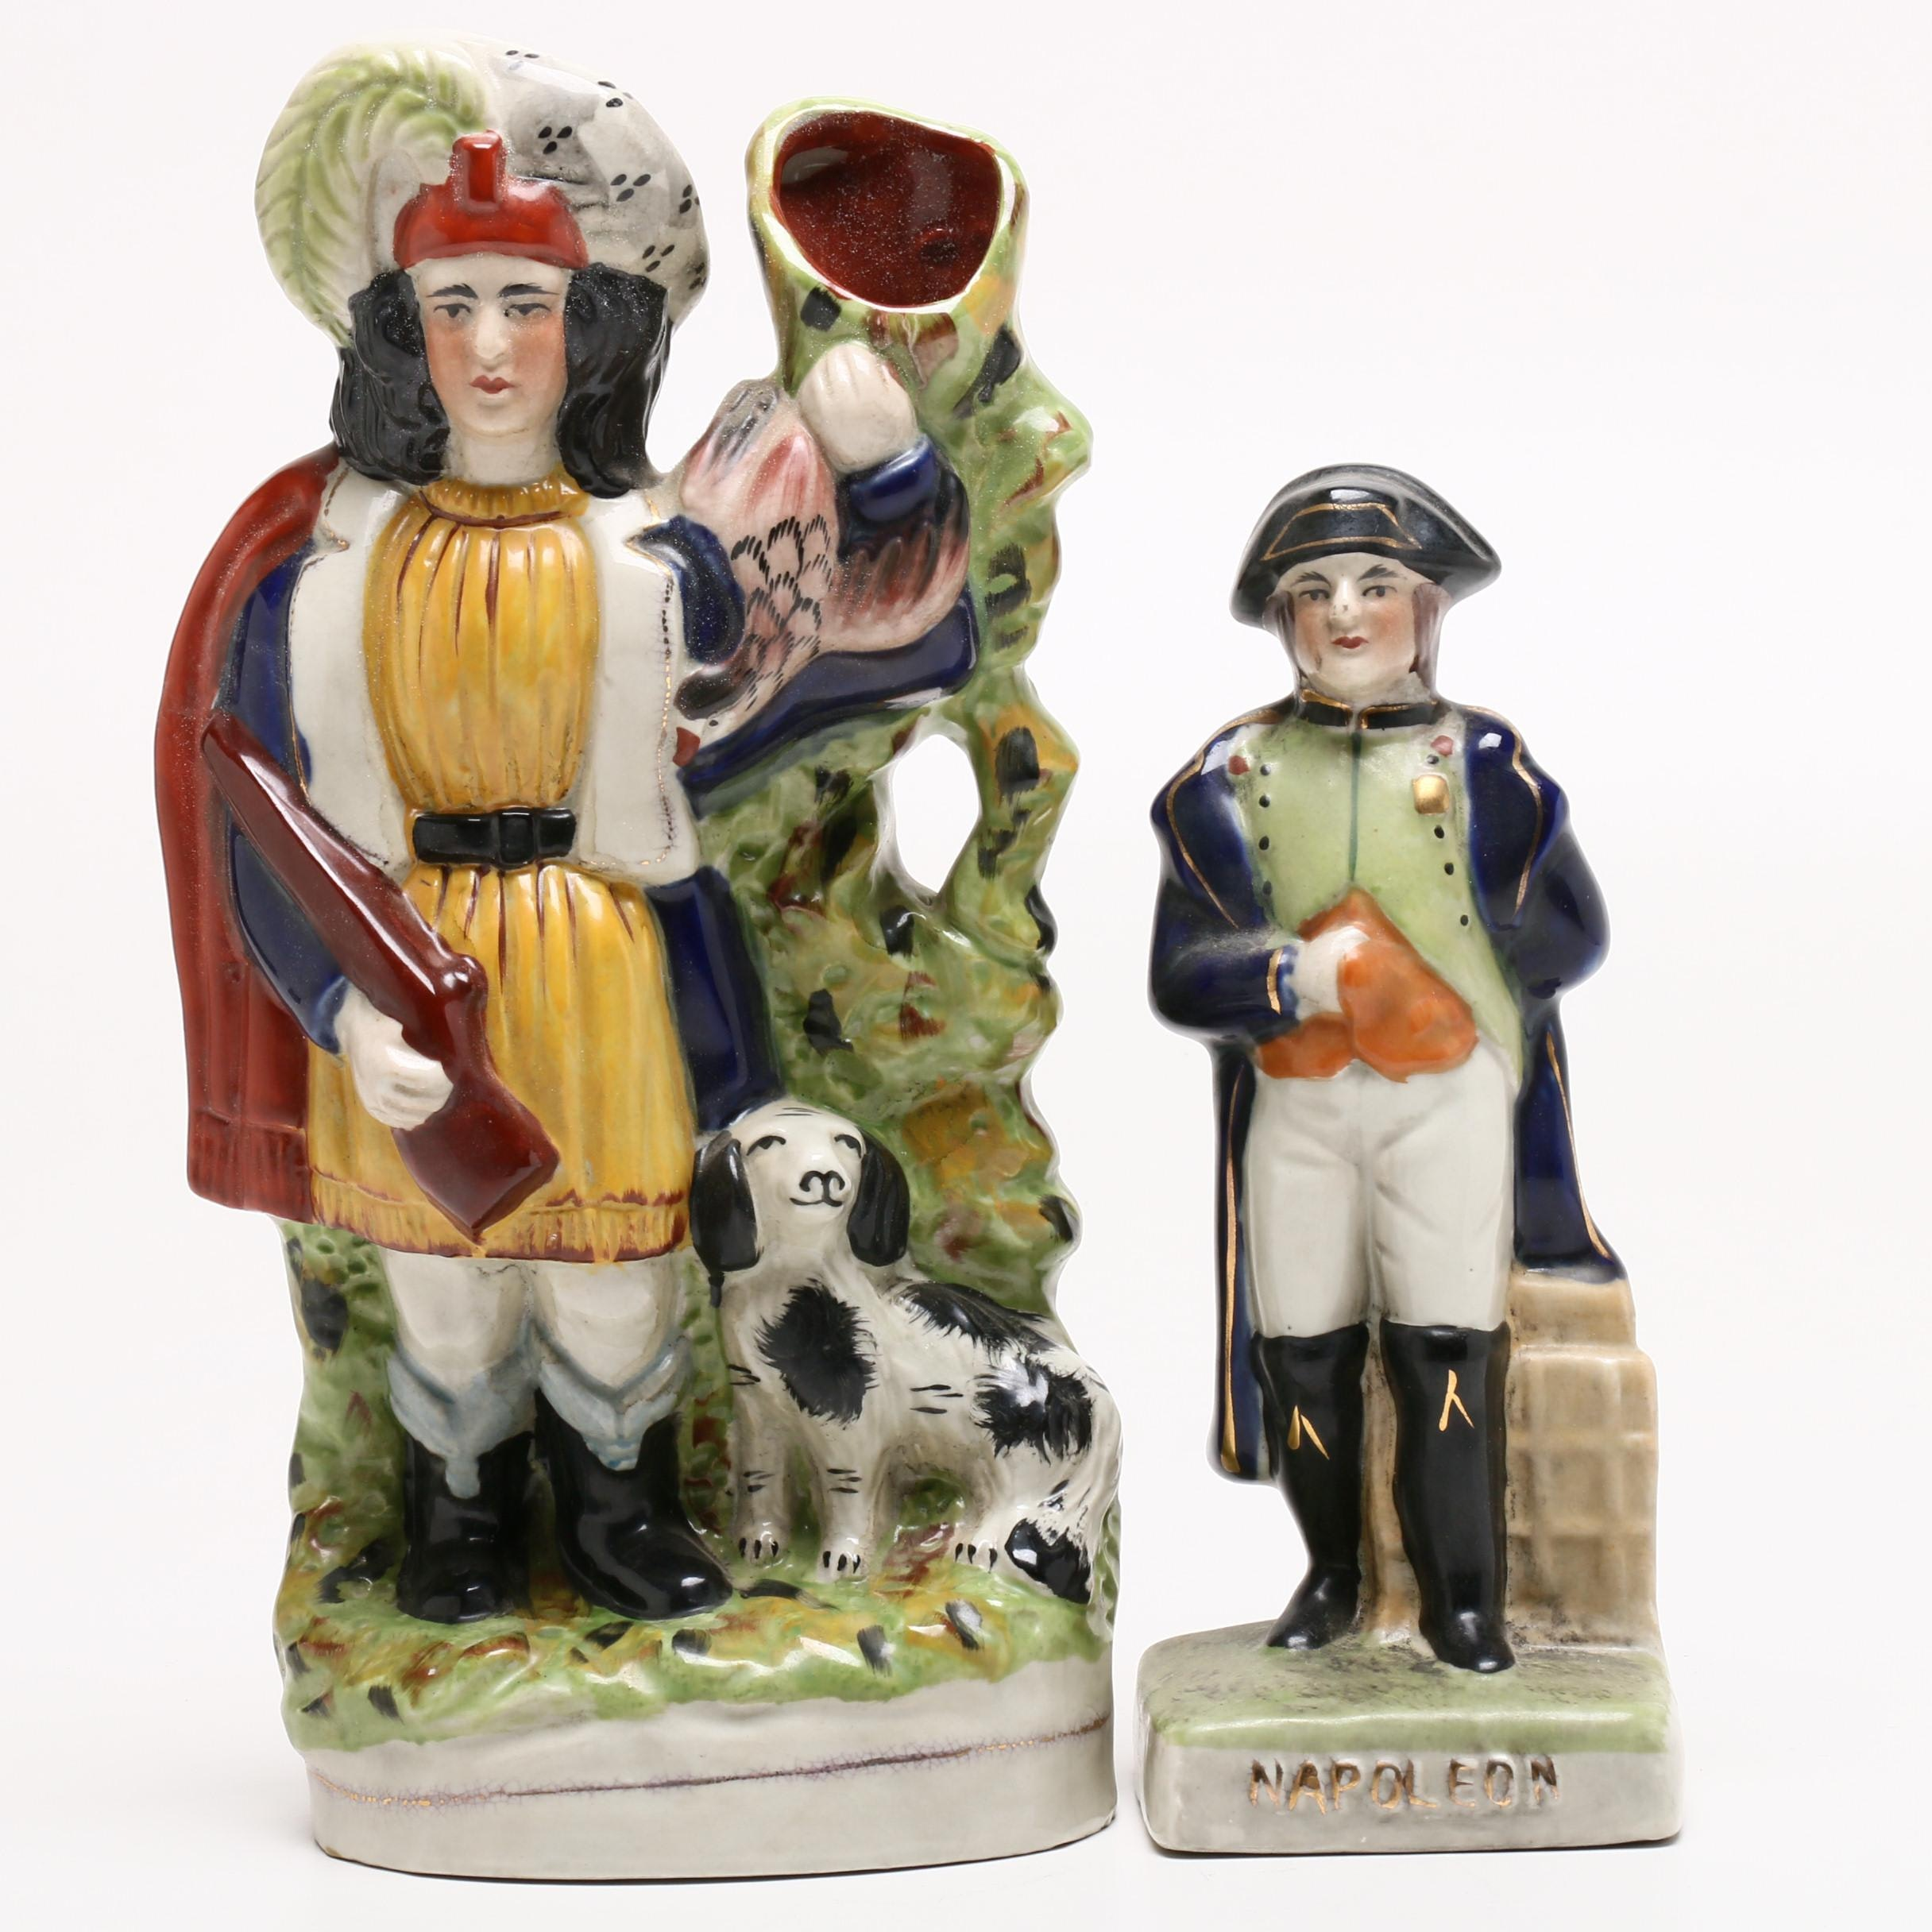 Staffordshire Style Figurine of Napoleon and Hunter with Dog Spill Vase